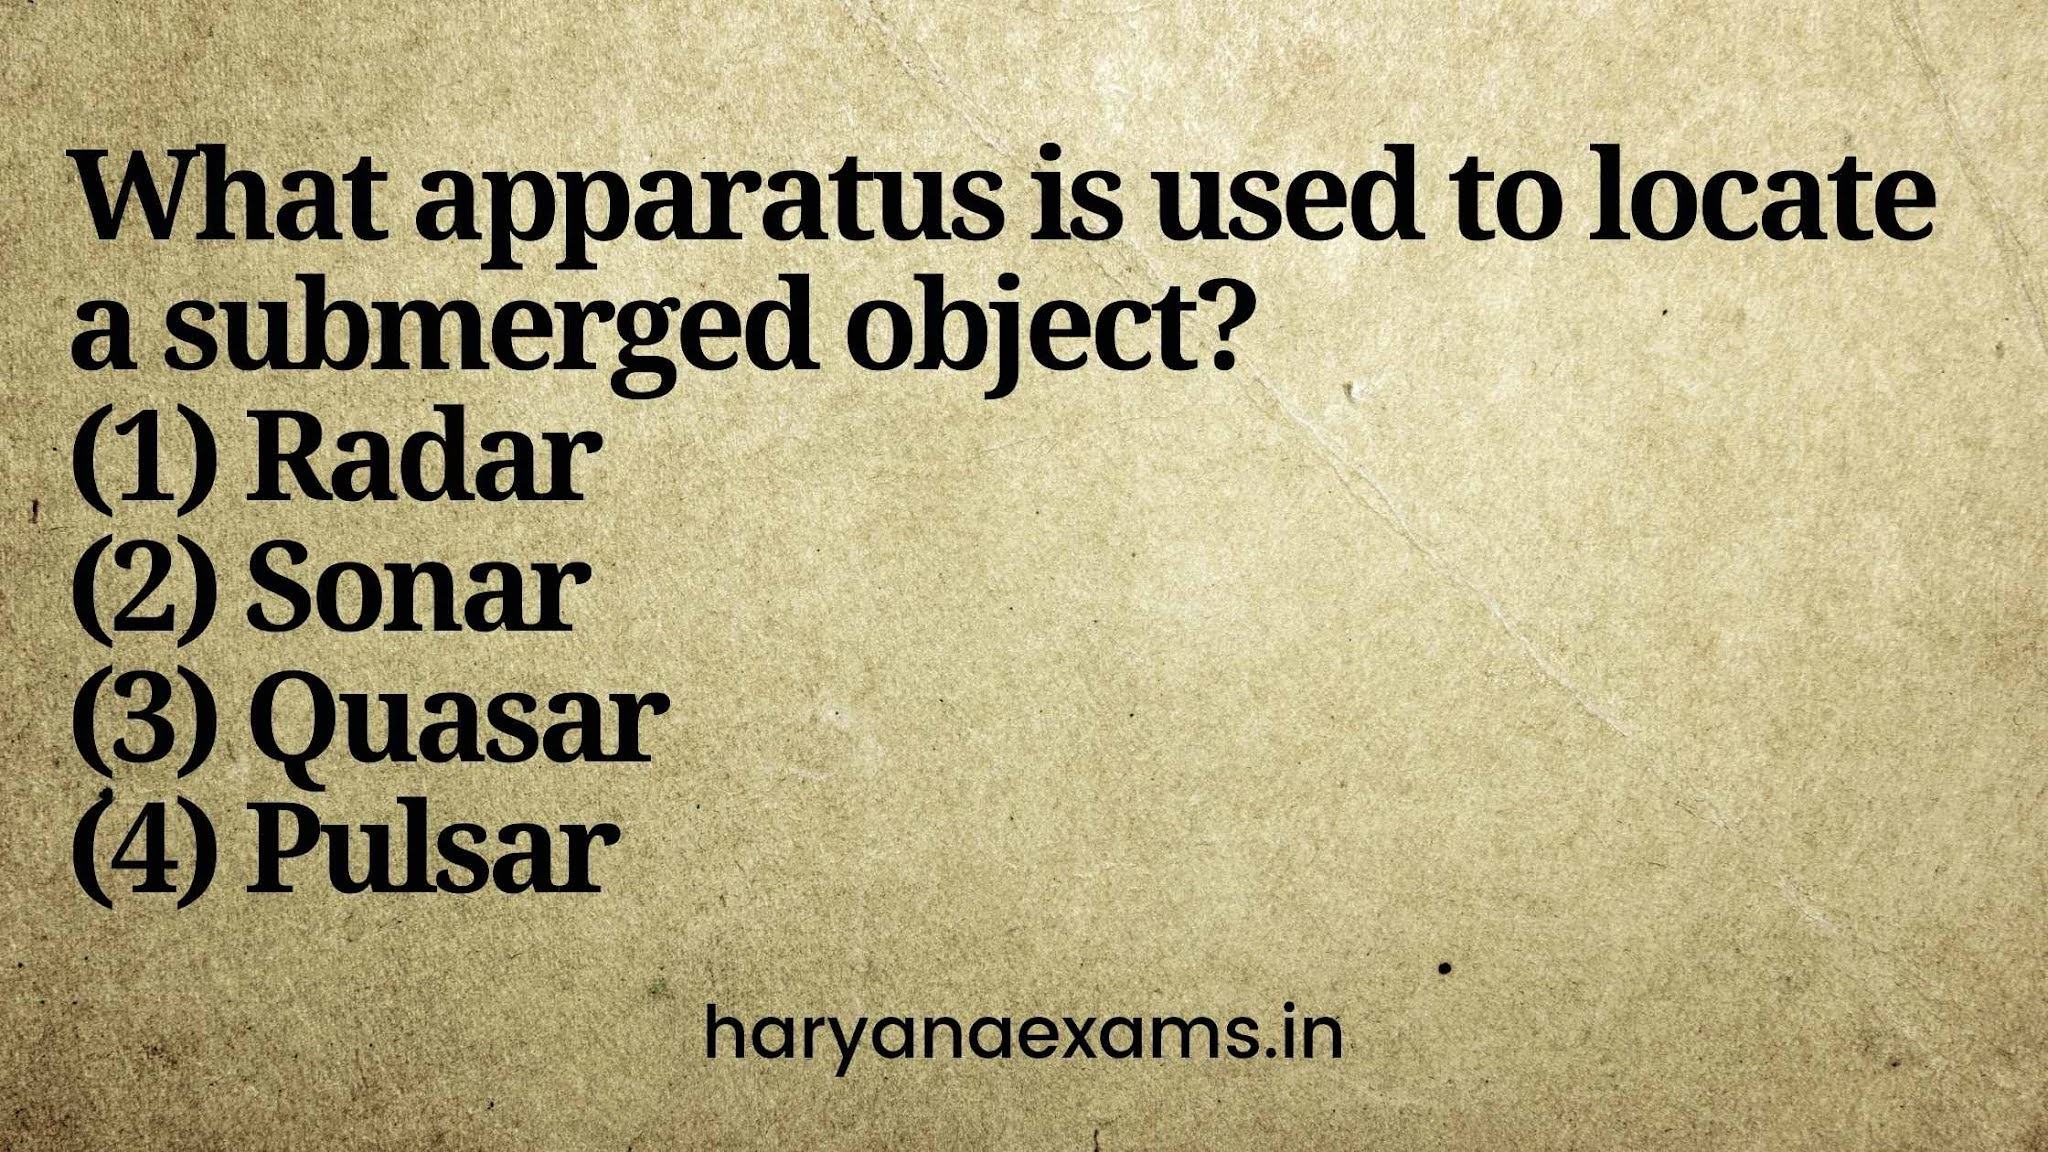 What apparatus is used to locate a submerged object?   (1) Radar   (2) Sonar   (3) Quasar   (4) Pulsar